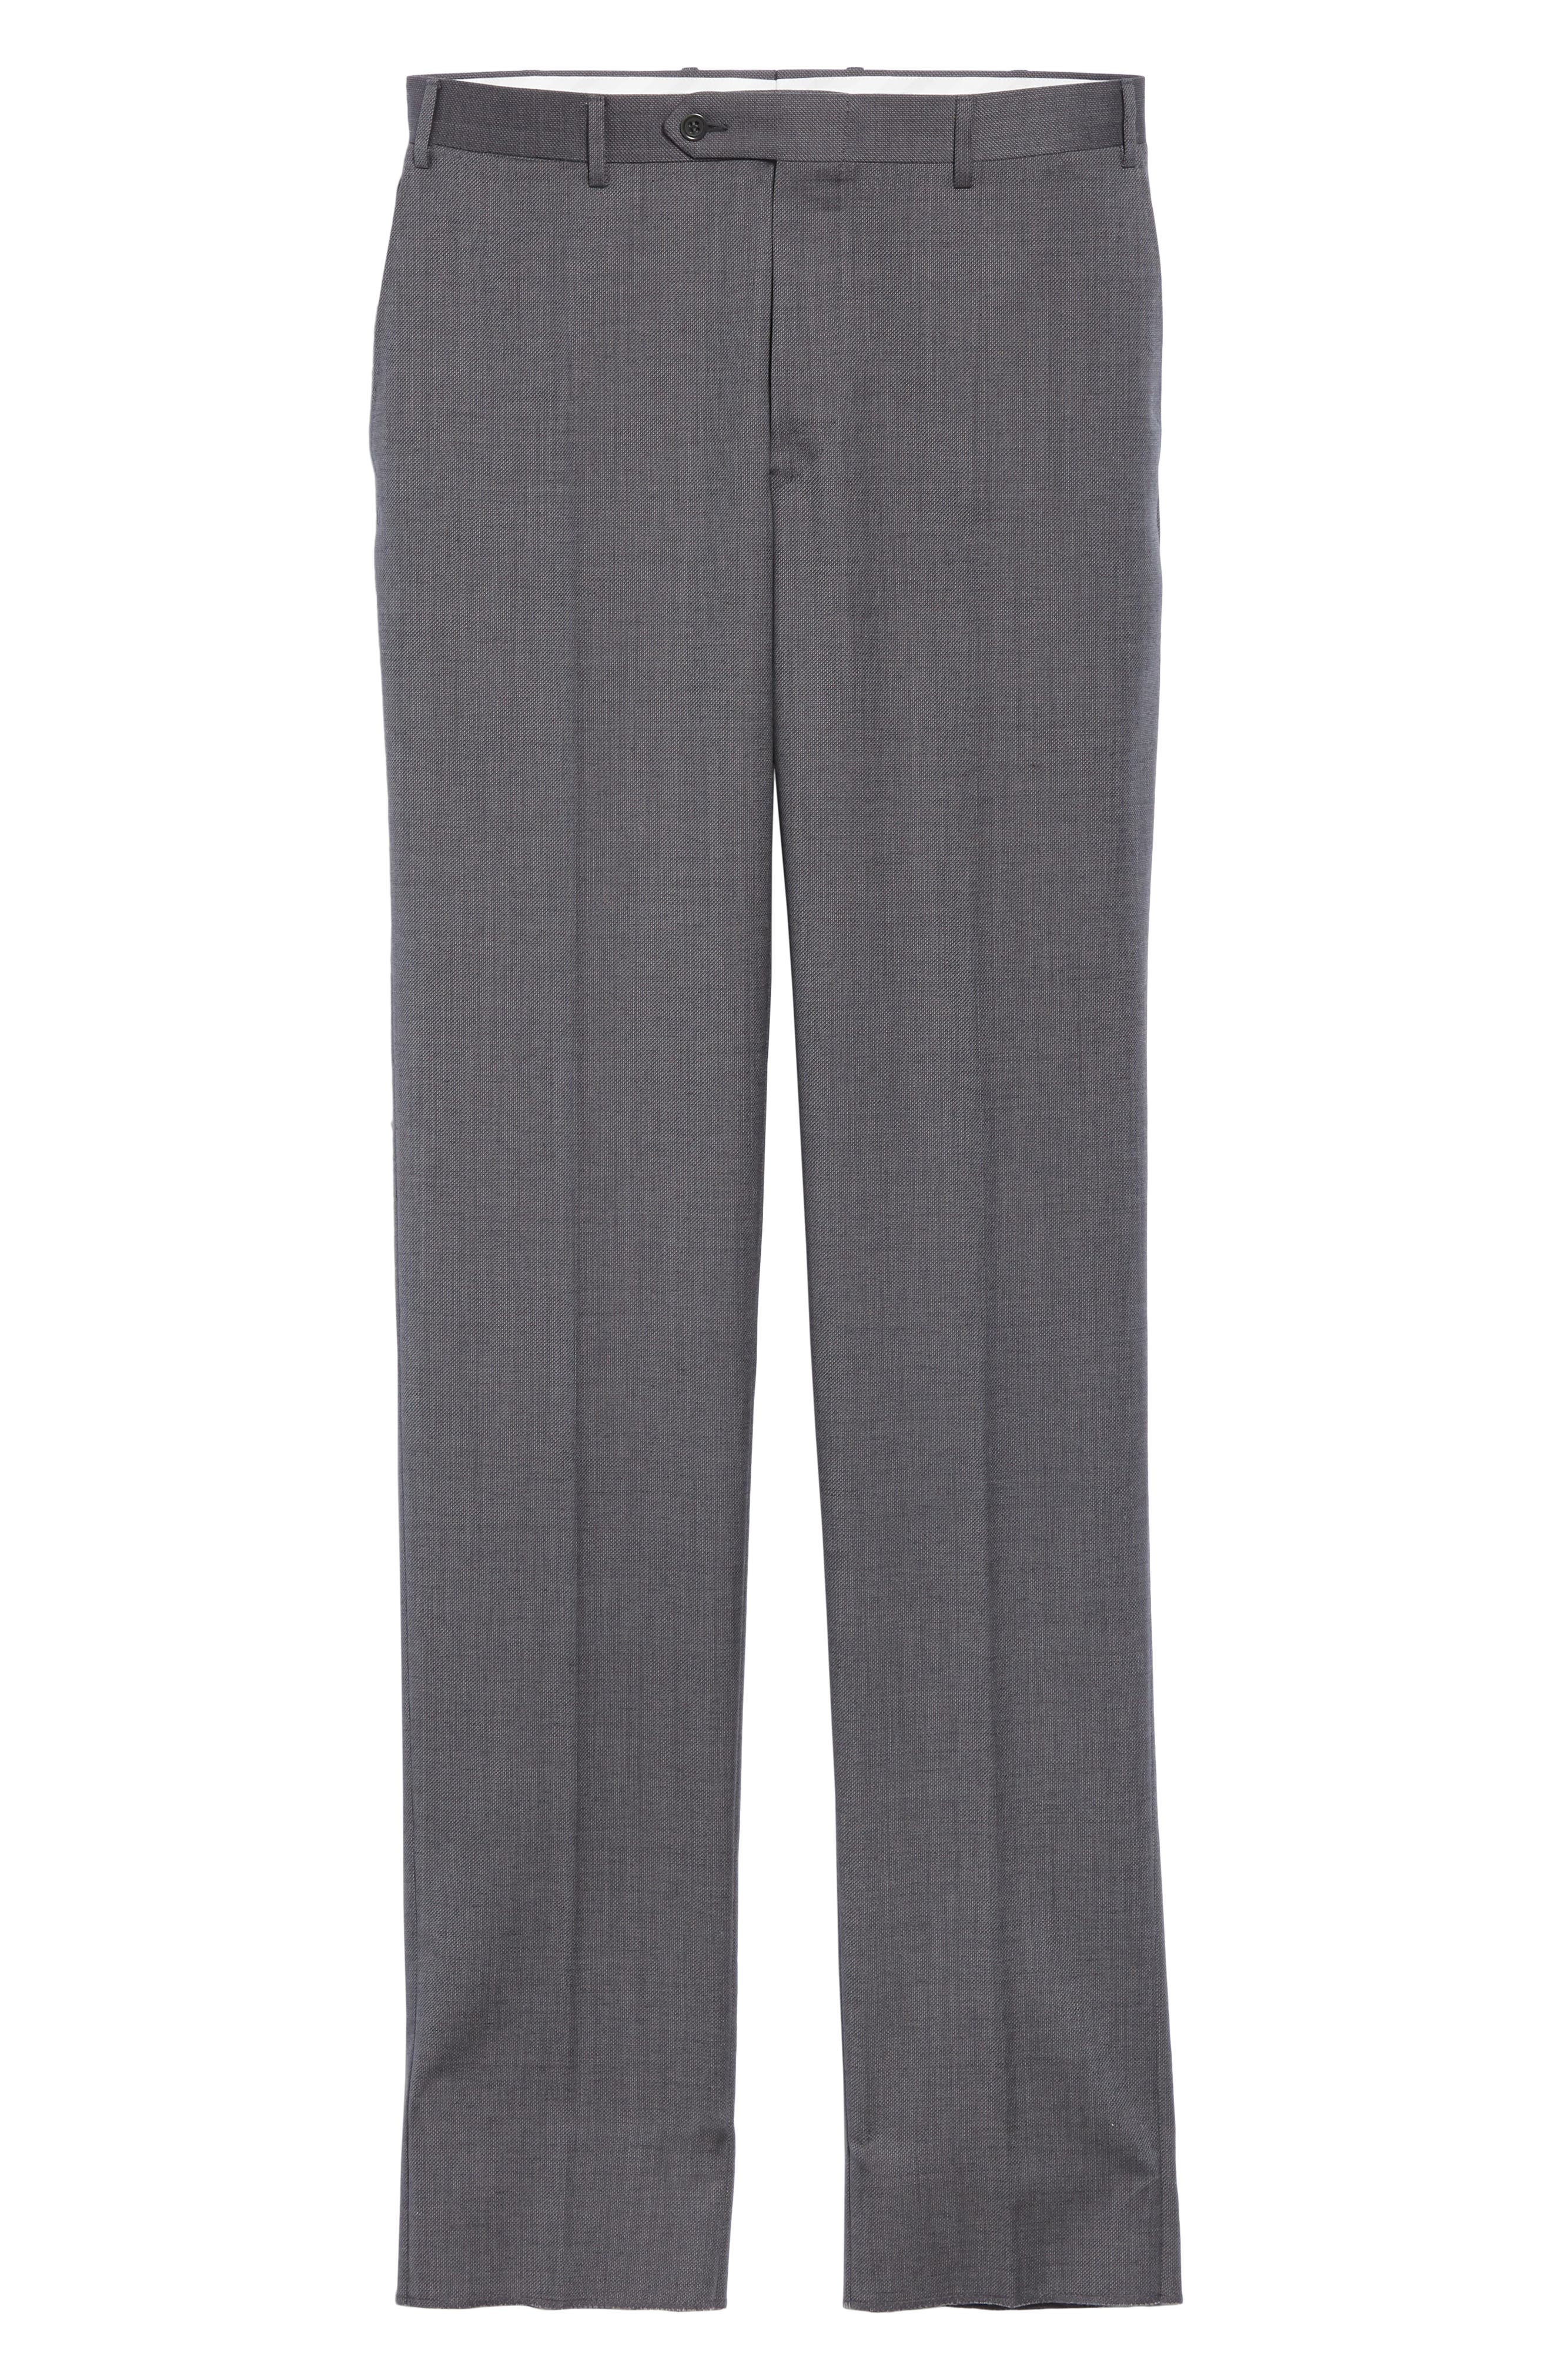 CANALI, Flat Front Solid Wool Trousers, Alternate thumbnail 6, color, CHARCOAL